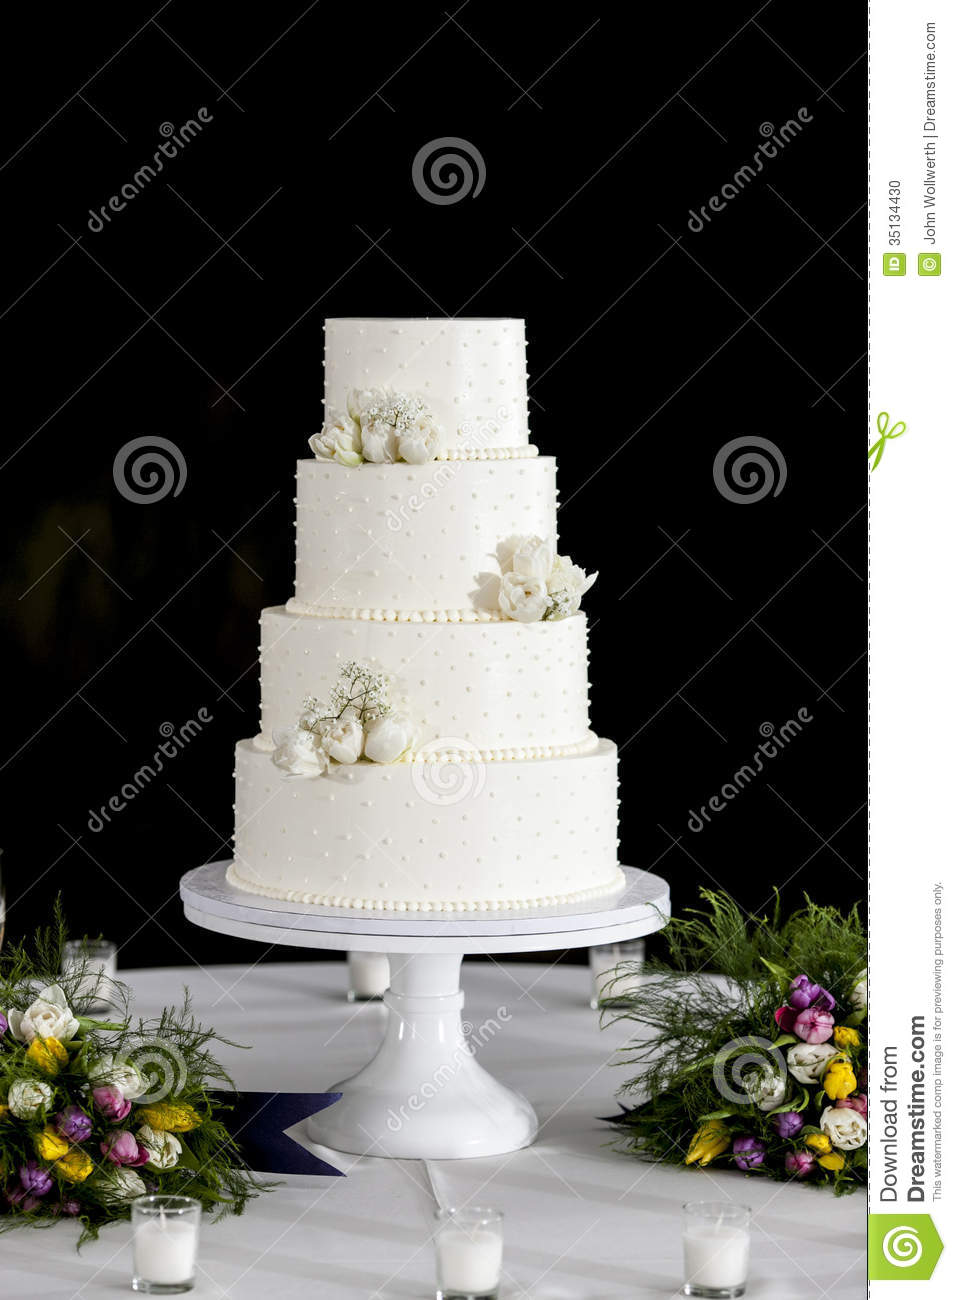 Four Tiered Wedding Cake Stock Photo Image Of Confection